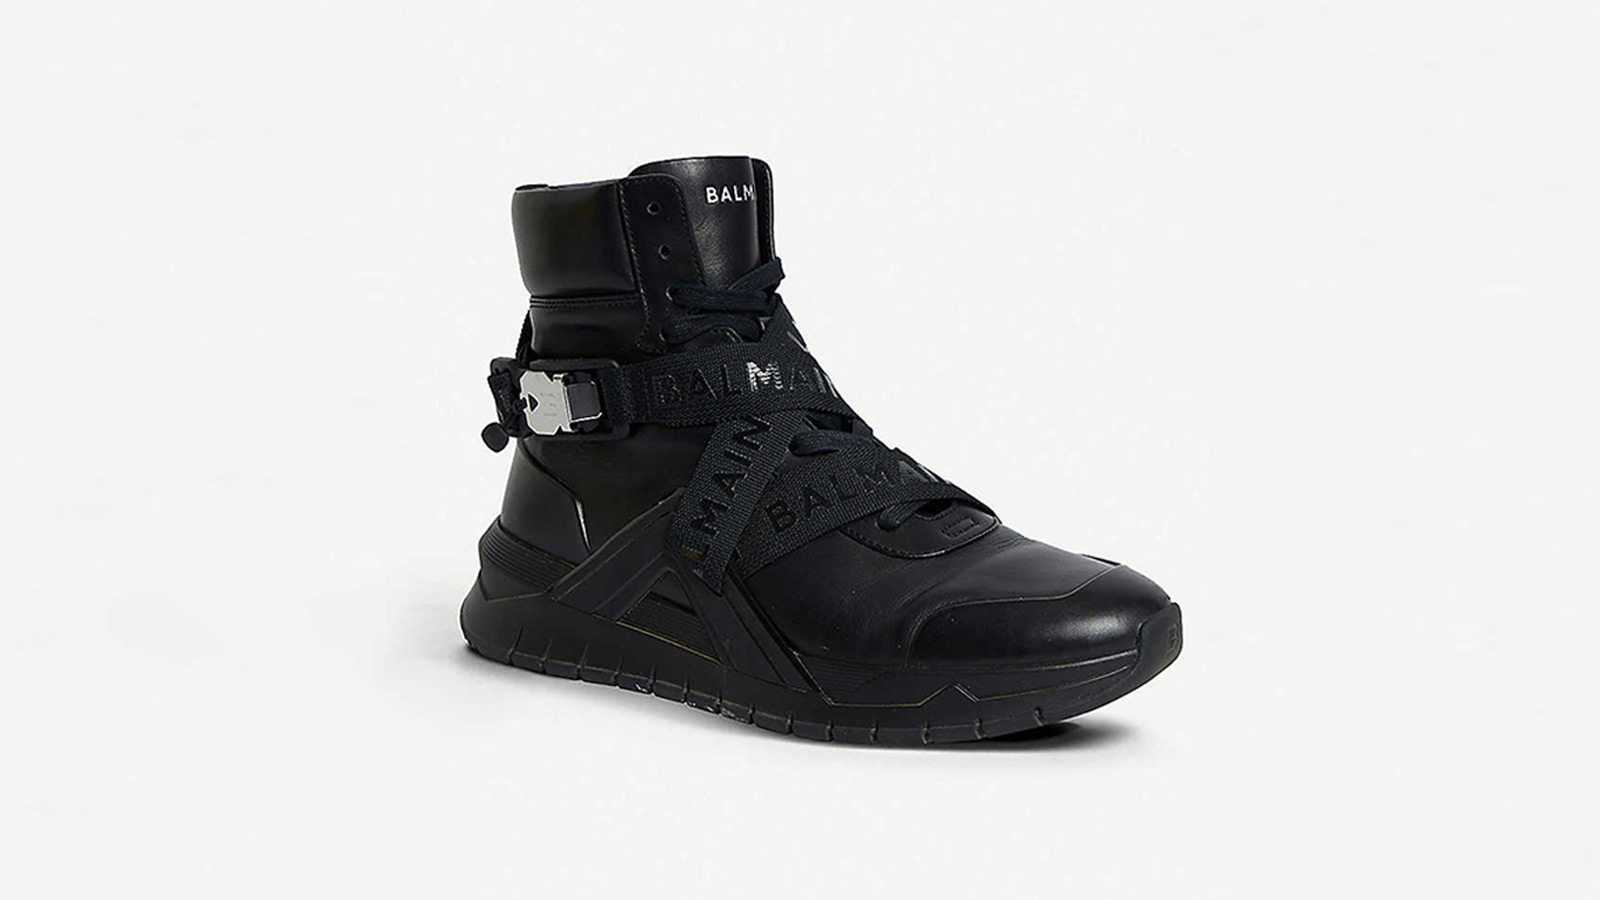 Balmain Troop Strap Trainer